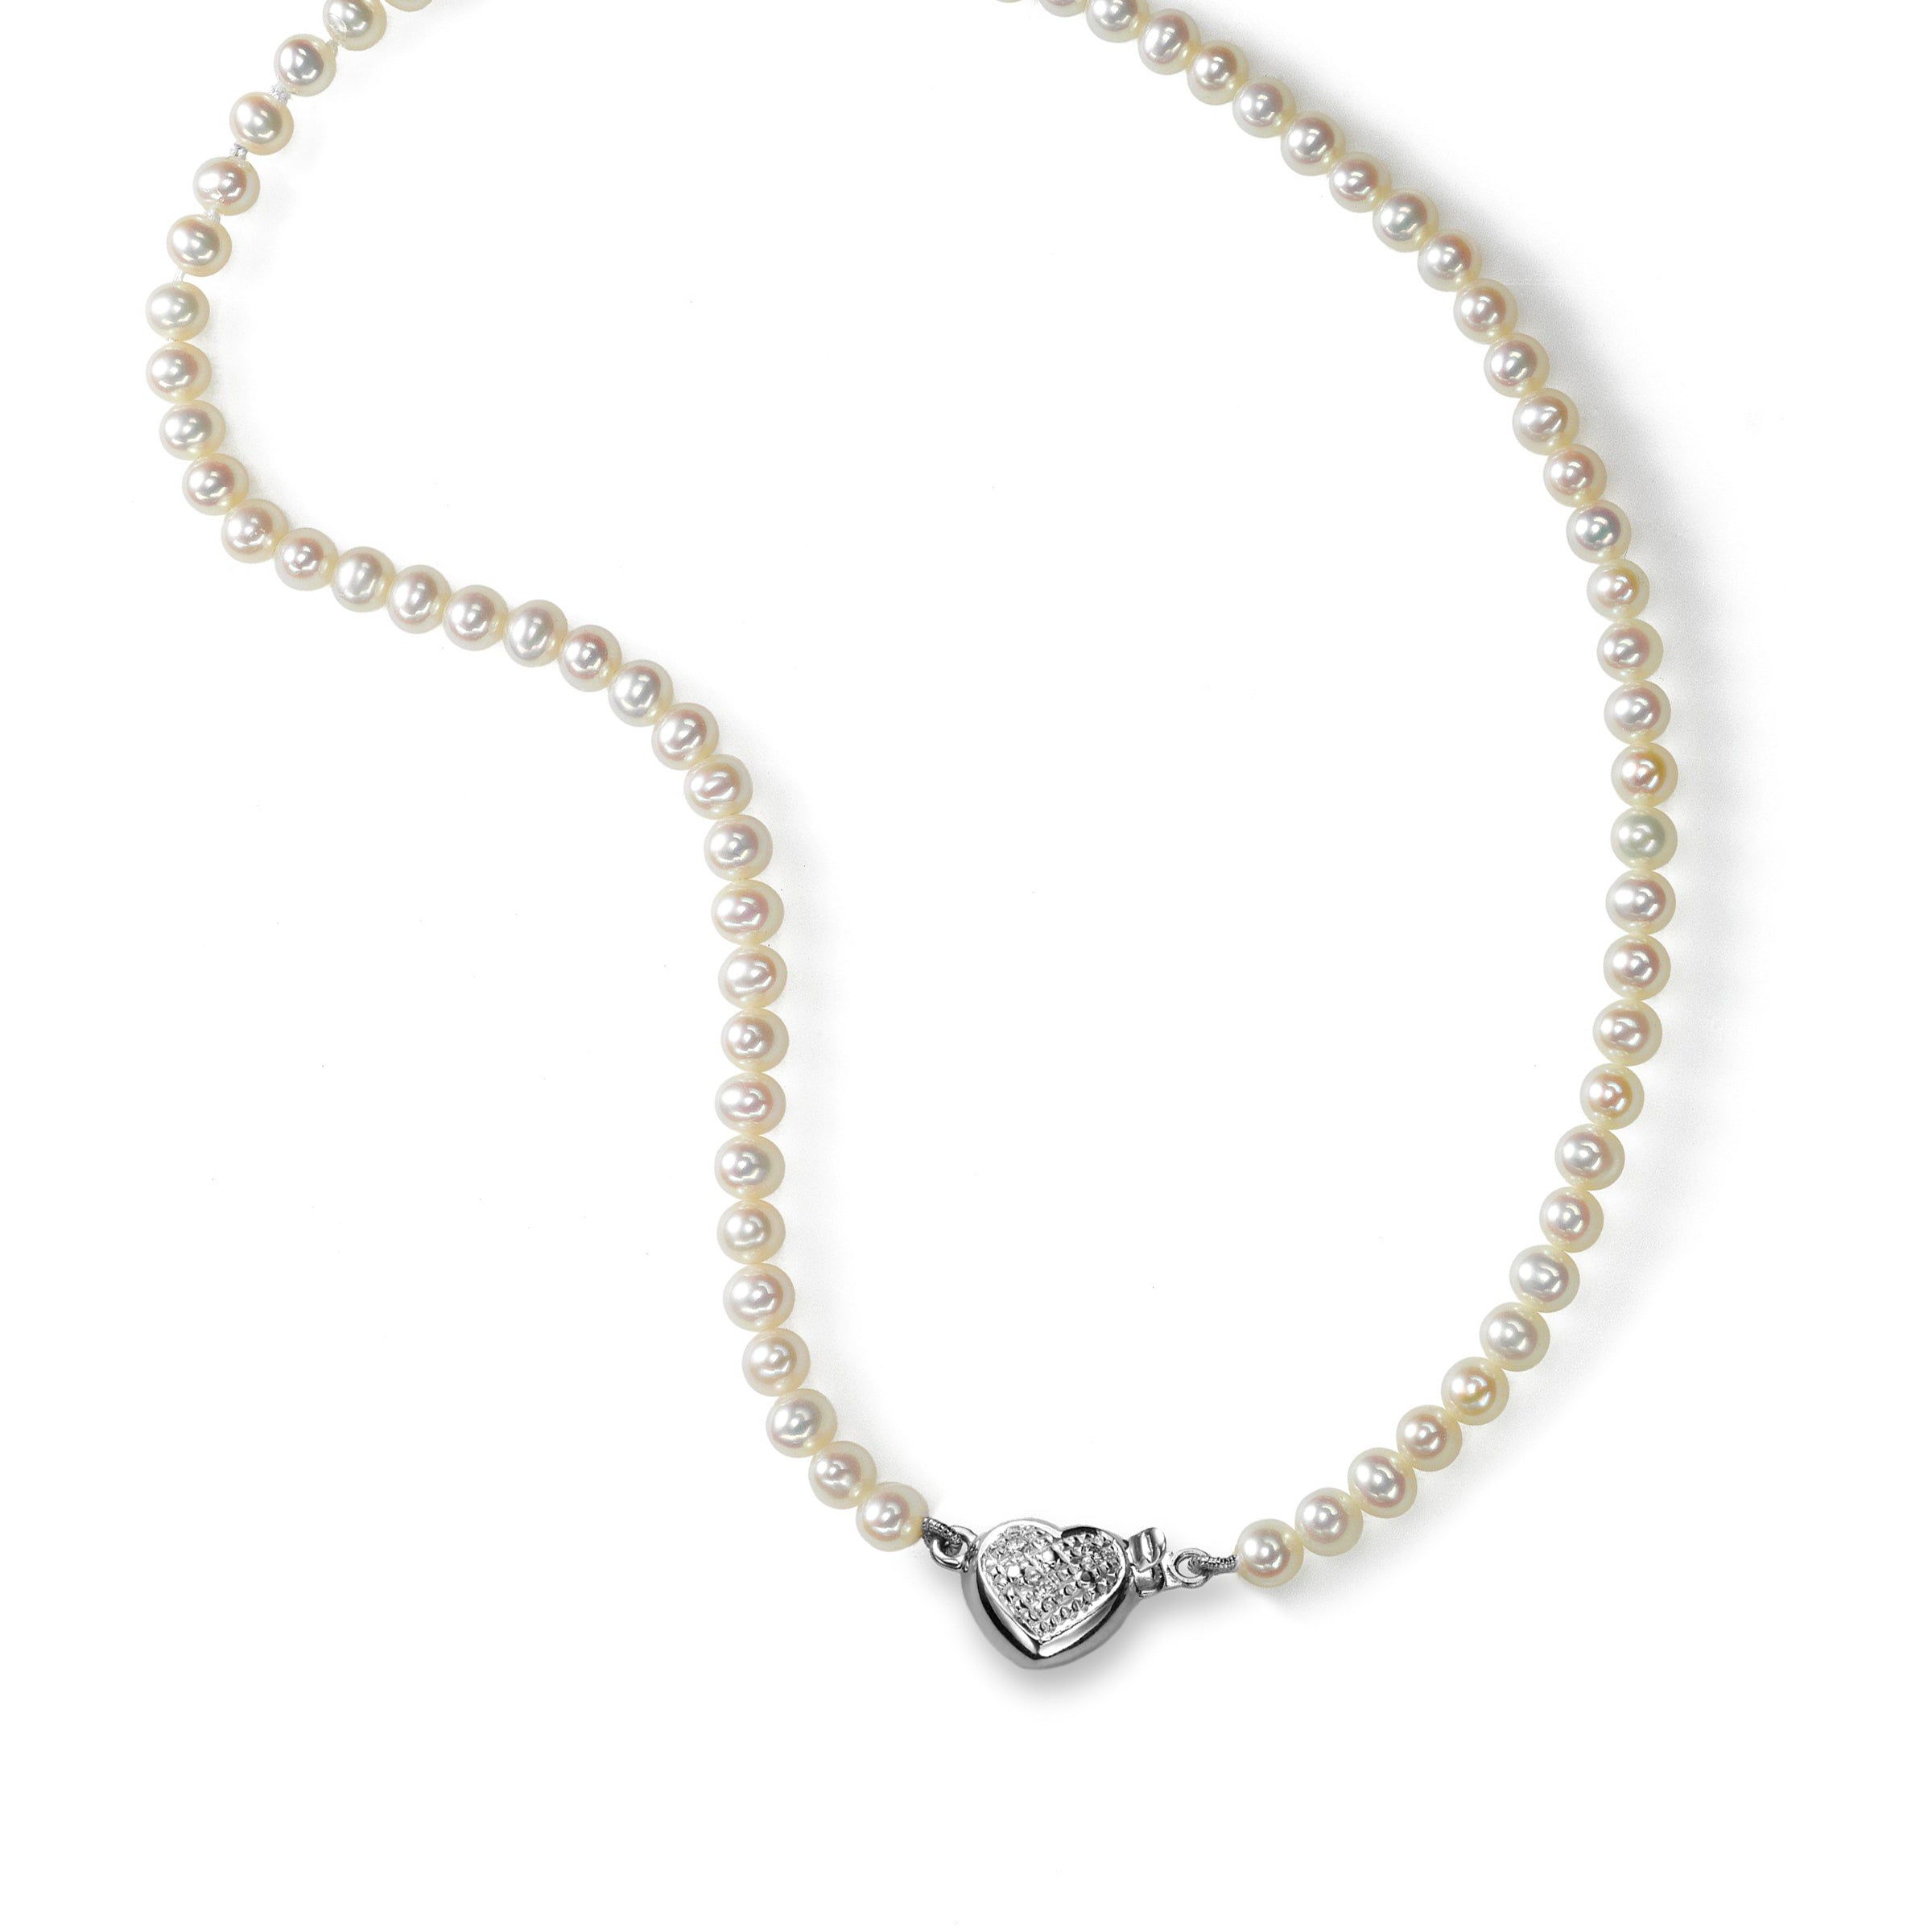 Girl's Pearl necklace